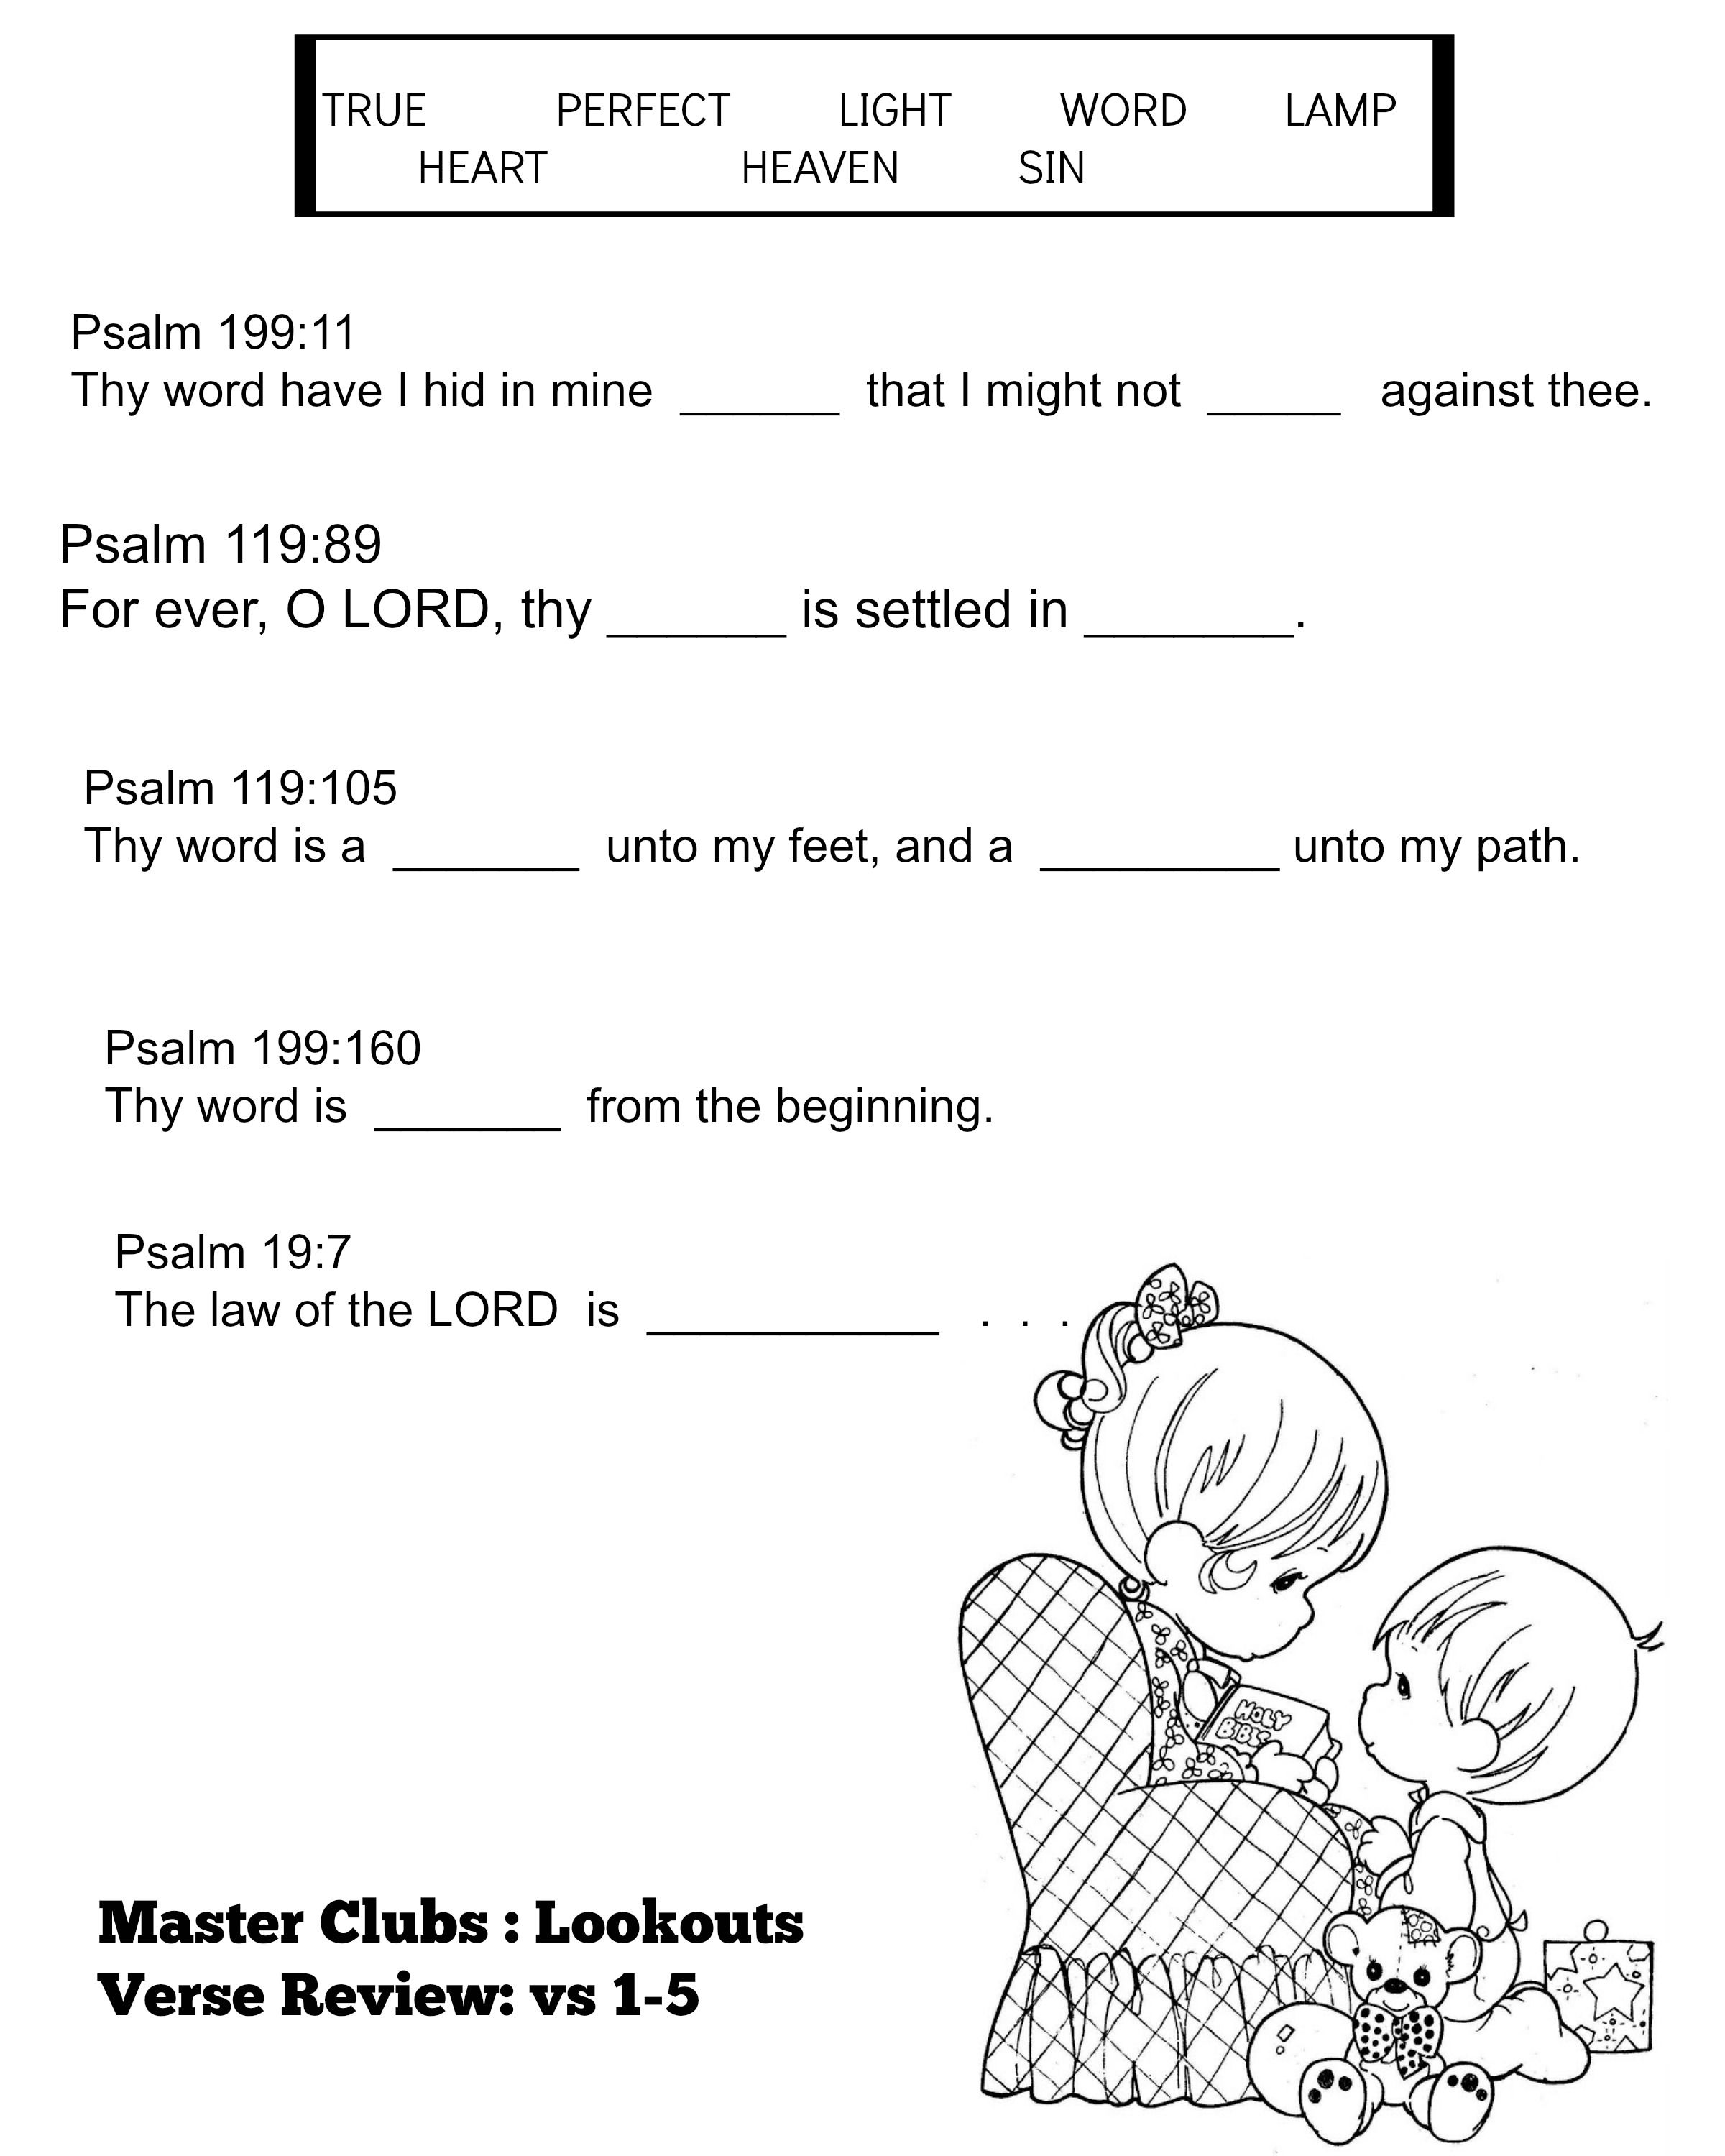 Coloring pages with bible verses - Verse Review Verses 1 5 Master Clubs Lookouts Bible Verse Coloring Page Precious Moments Designed